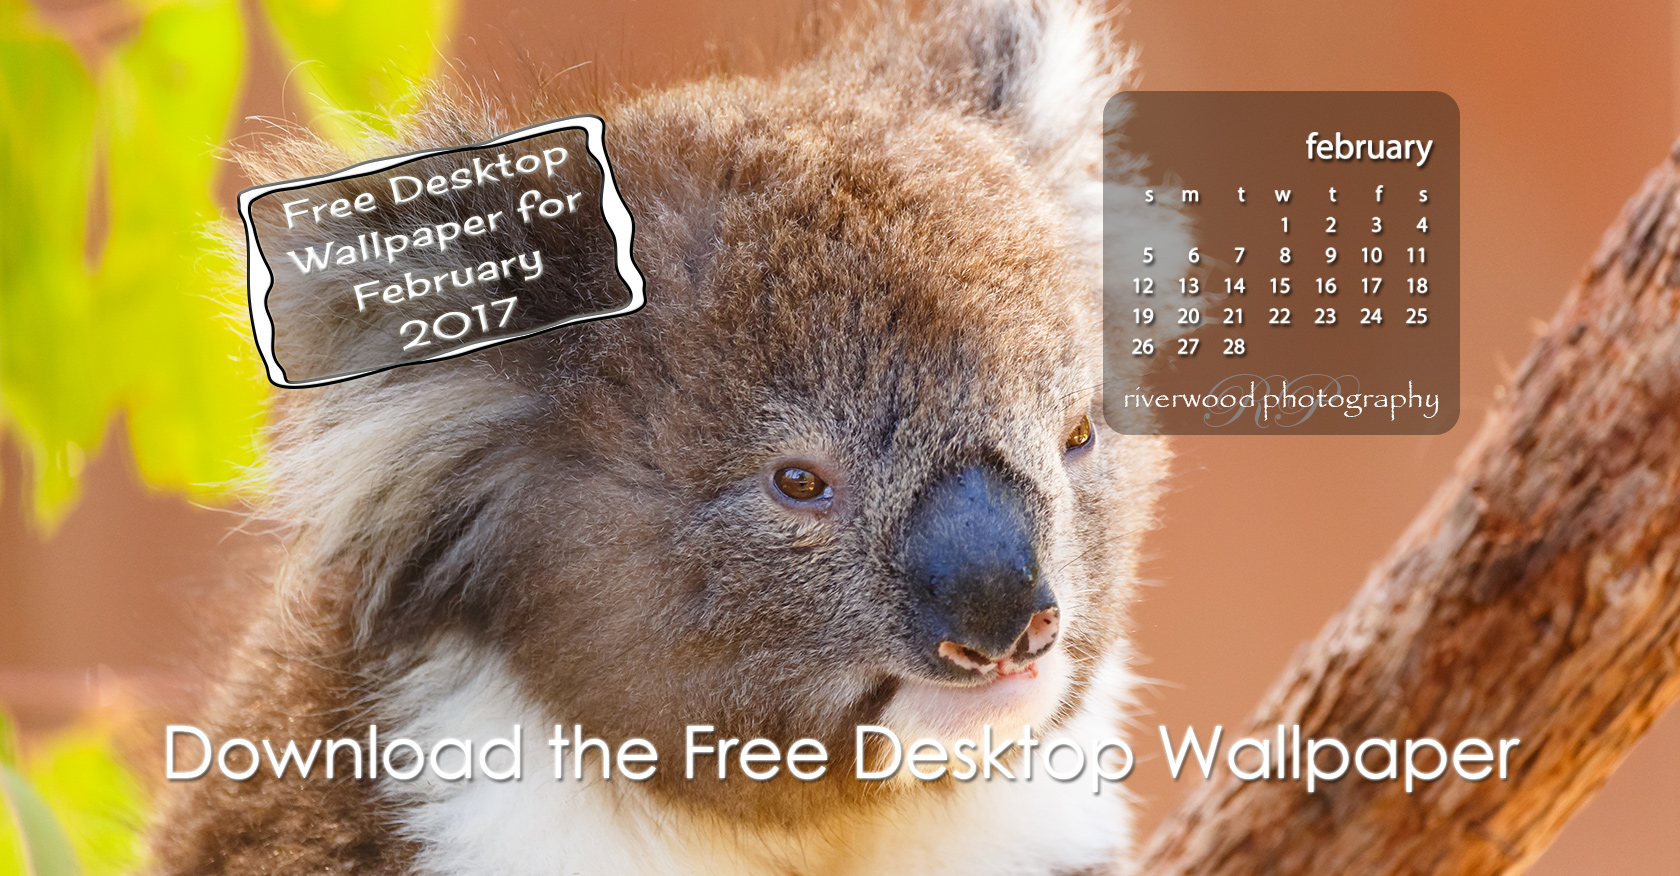 Free Desktop Wallpaper for February 2017